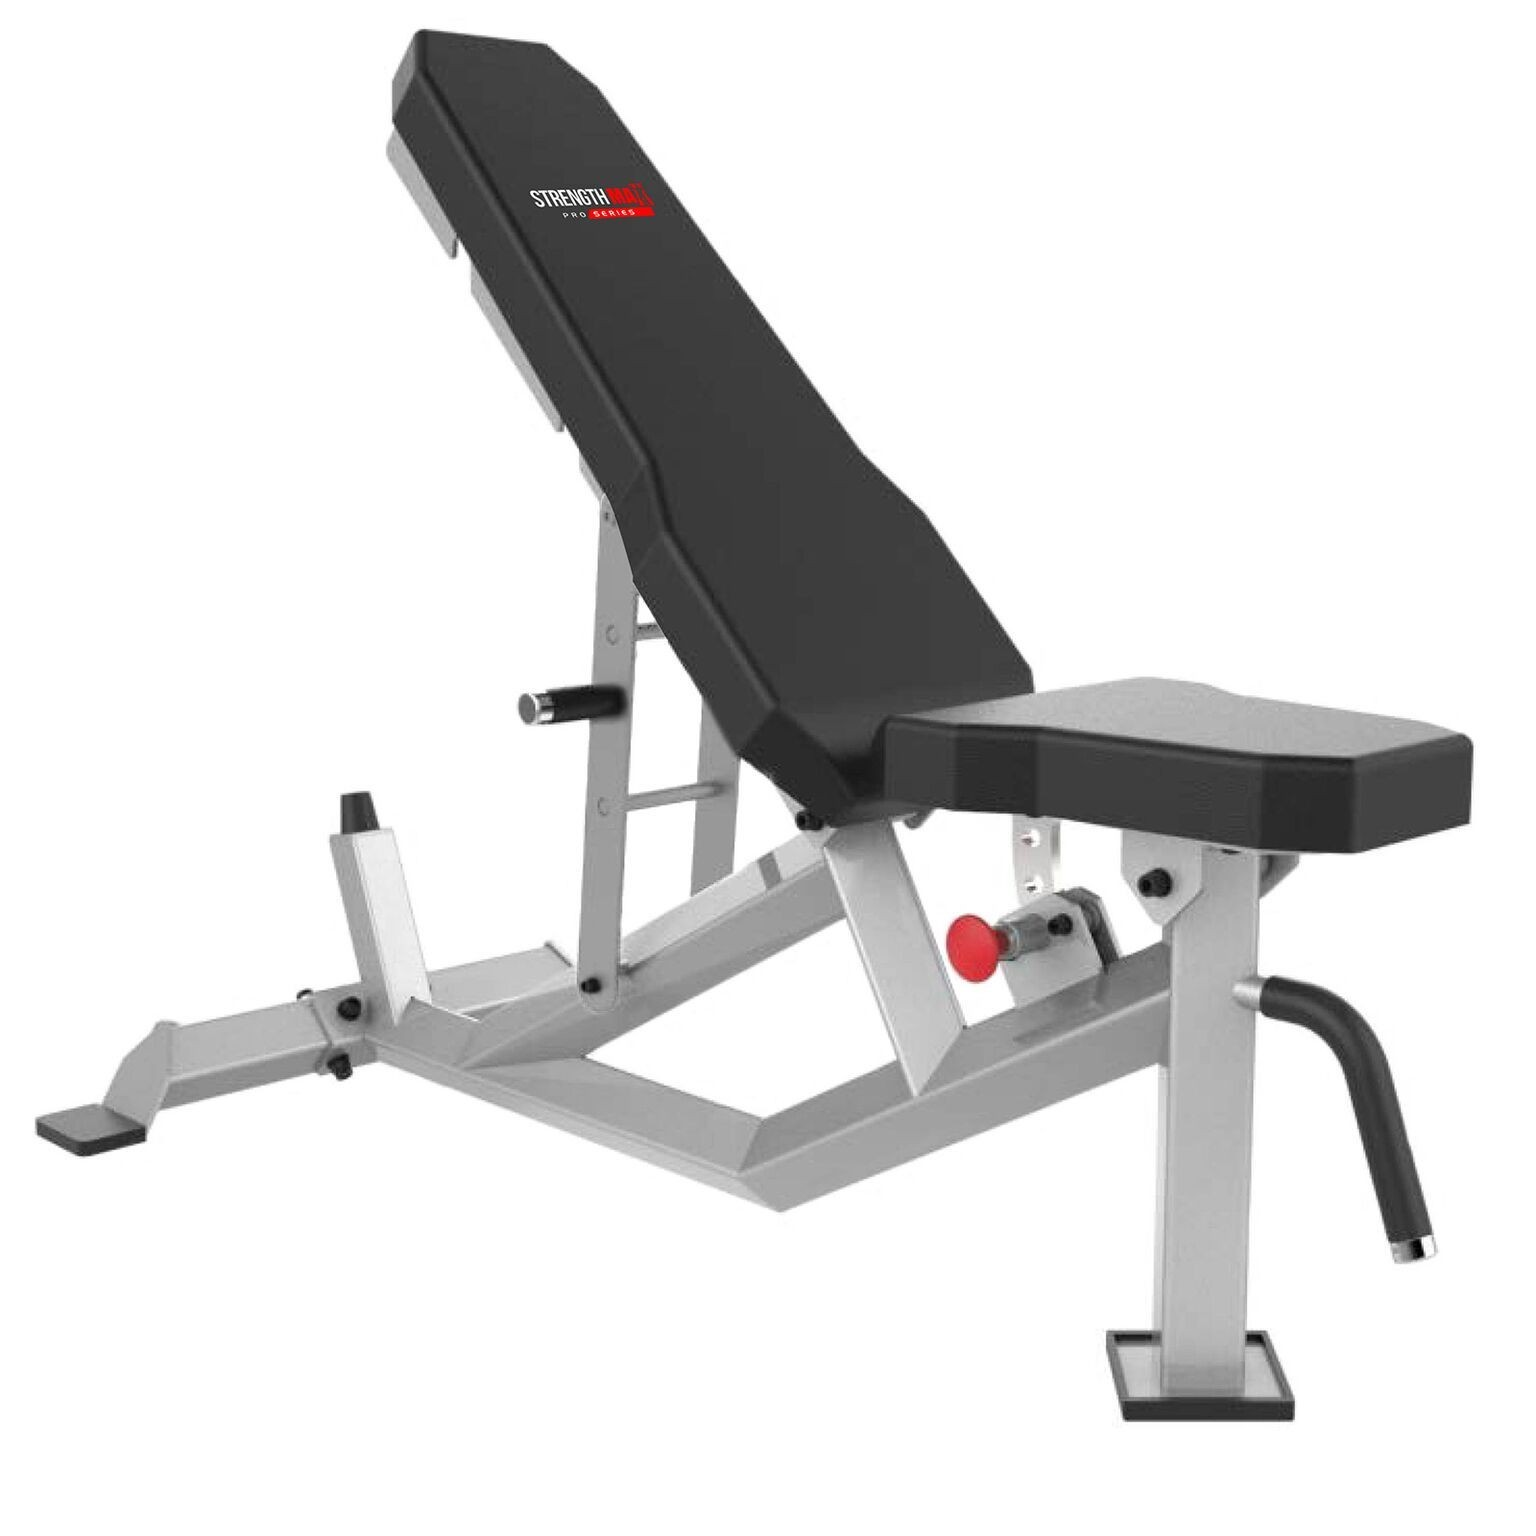 Pro Series Deluxe Commercial Bench